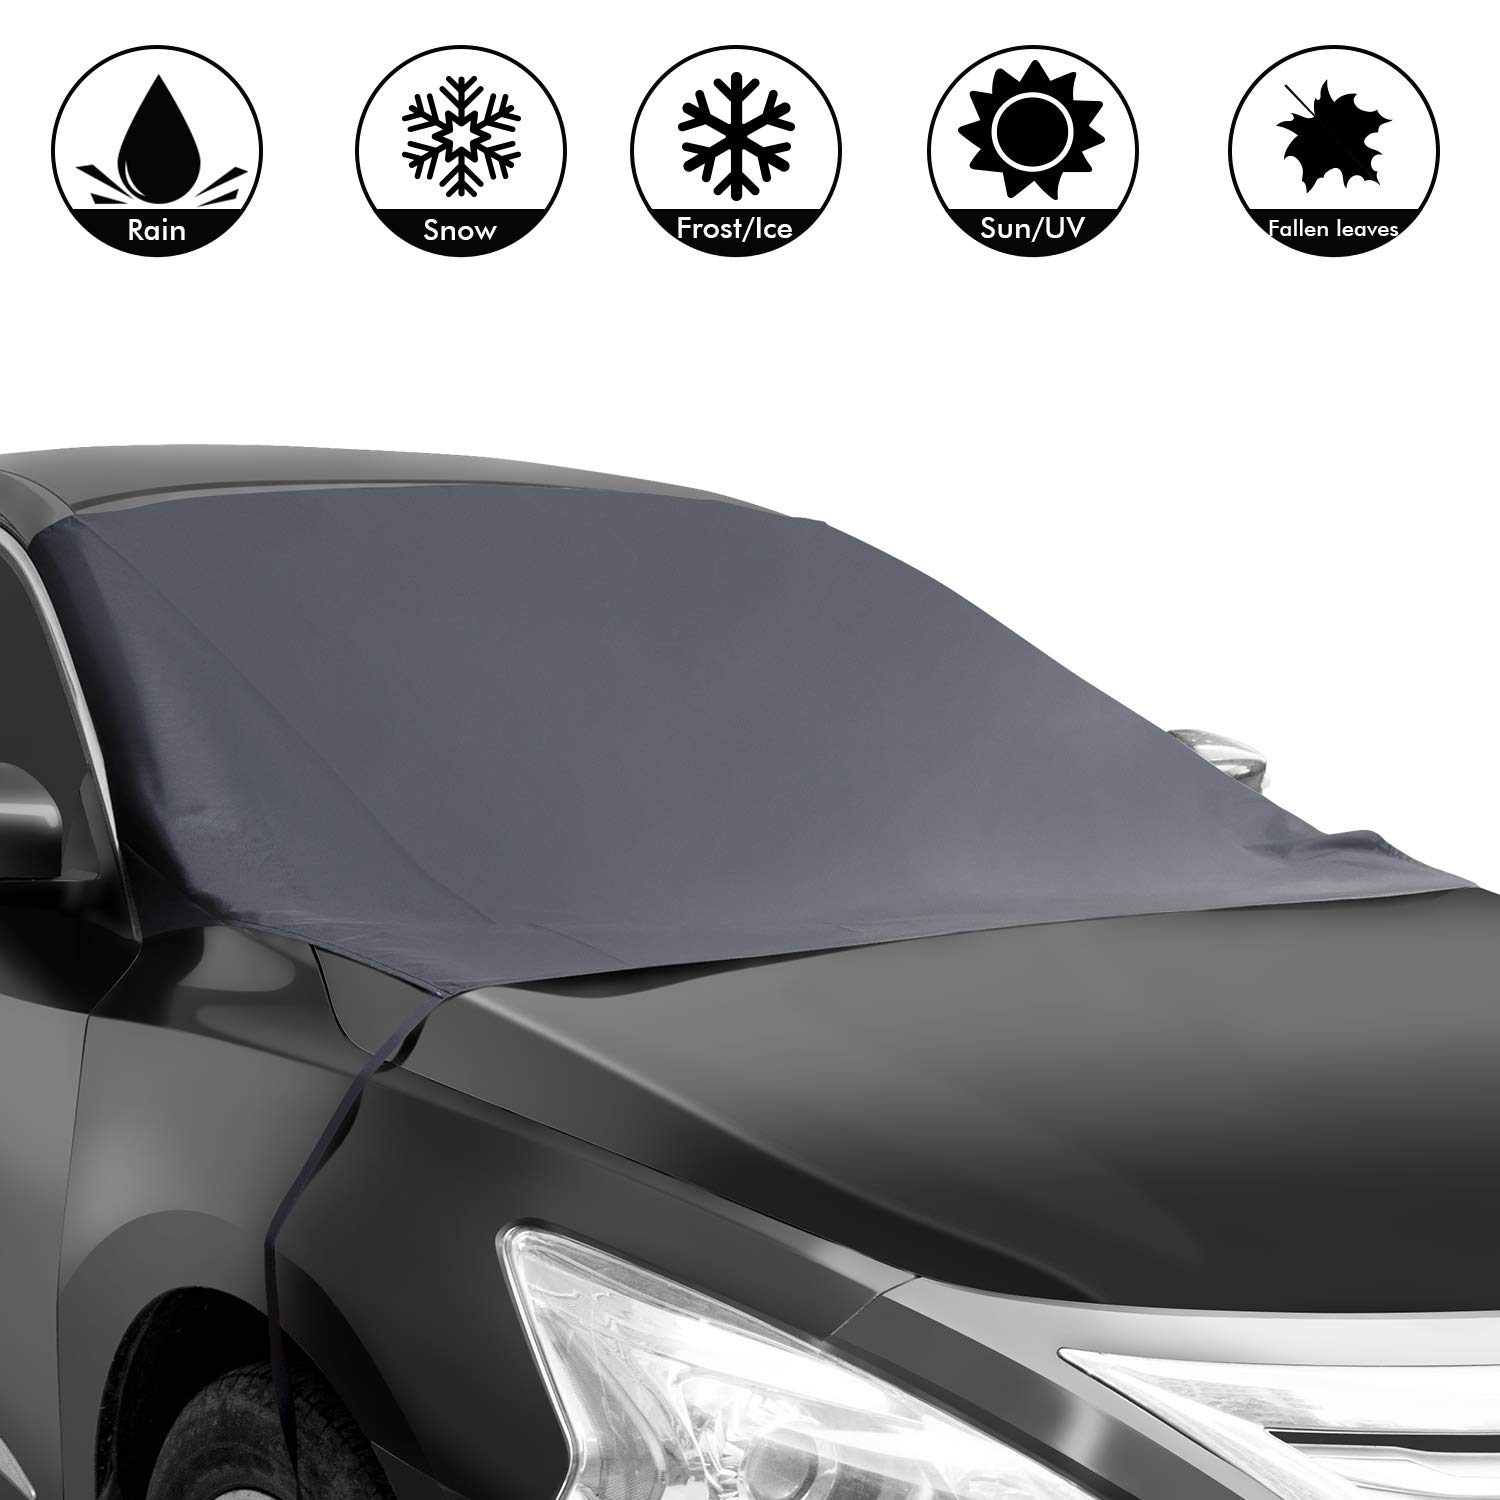 Shynerk Magnetic Edges Car Snow Cover, Frost Car Windshield Snow Cover, Frost Guard Protector, Ice Cover, Car Windsheild Sun Shade, Waterproof Windshield Protector Car/Truck/SUV 82'x48.8' Waterproof Windshield Protector Car/Truck/SUV 82x48.8